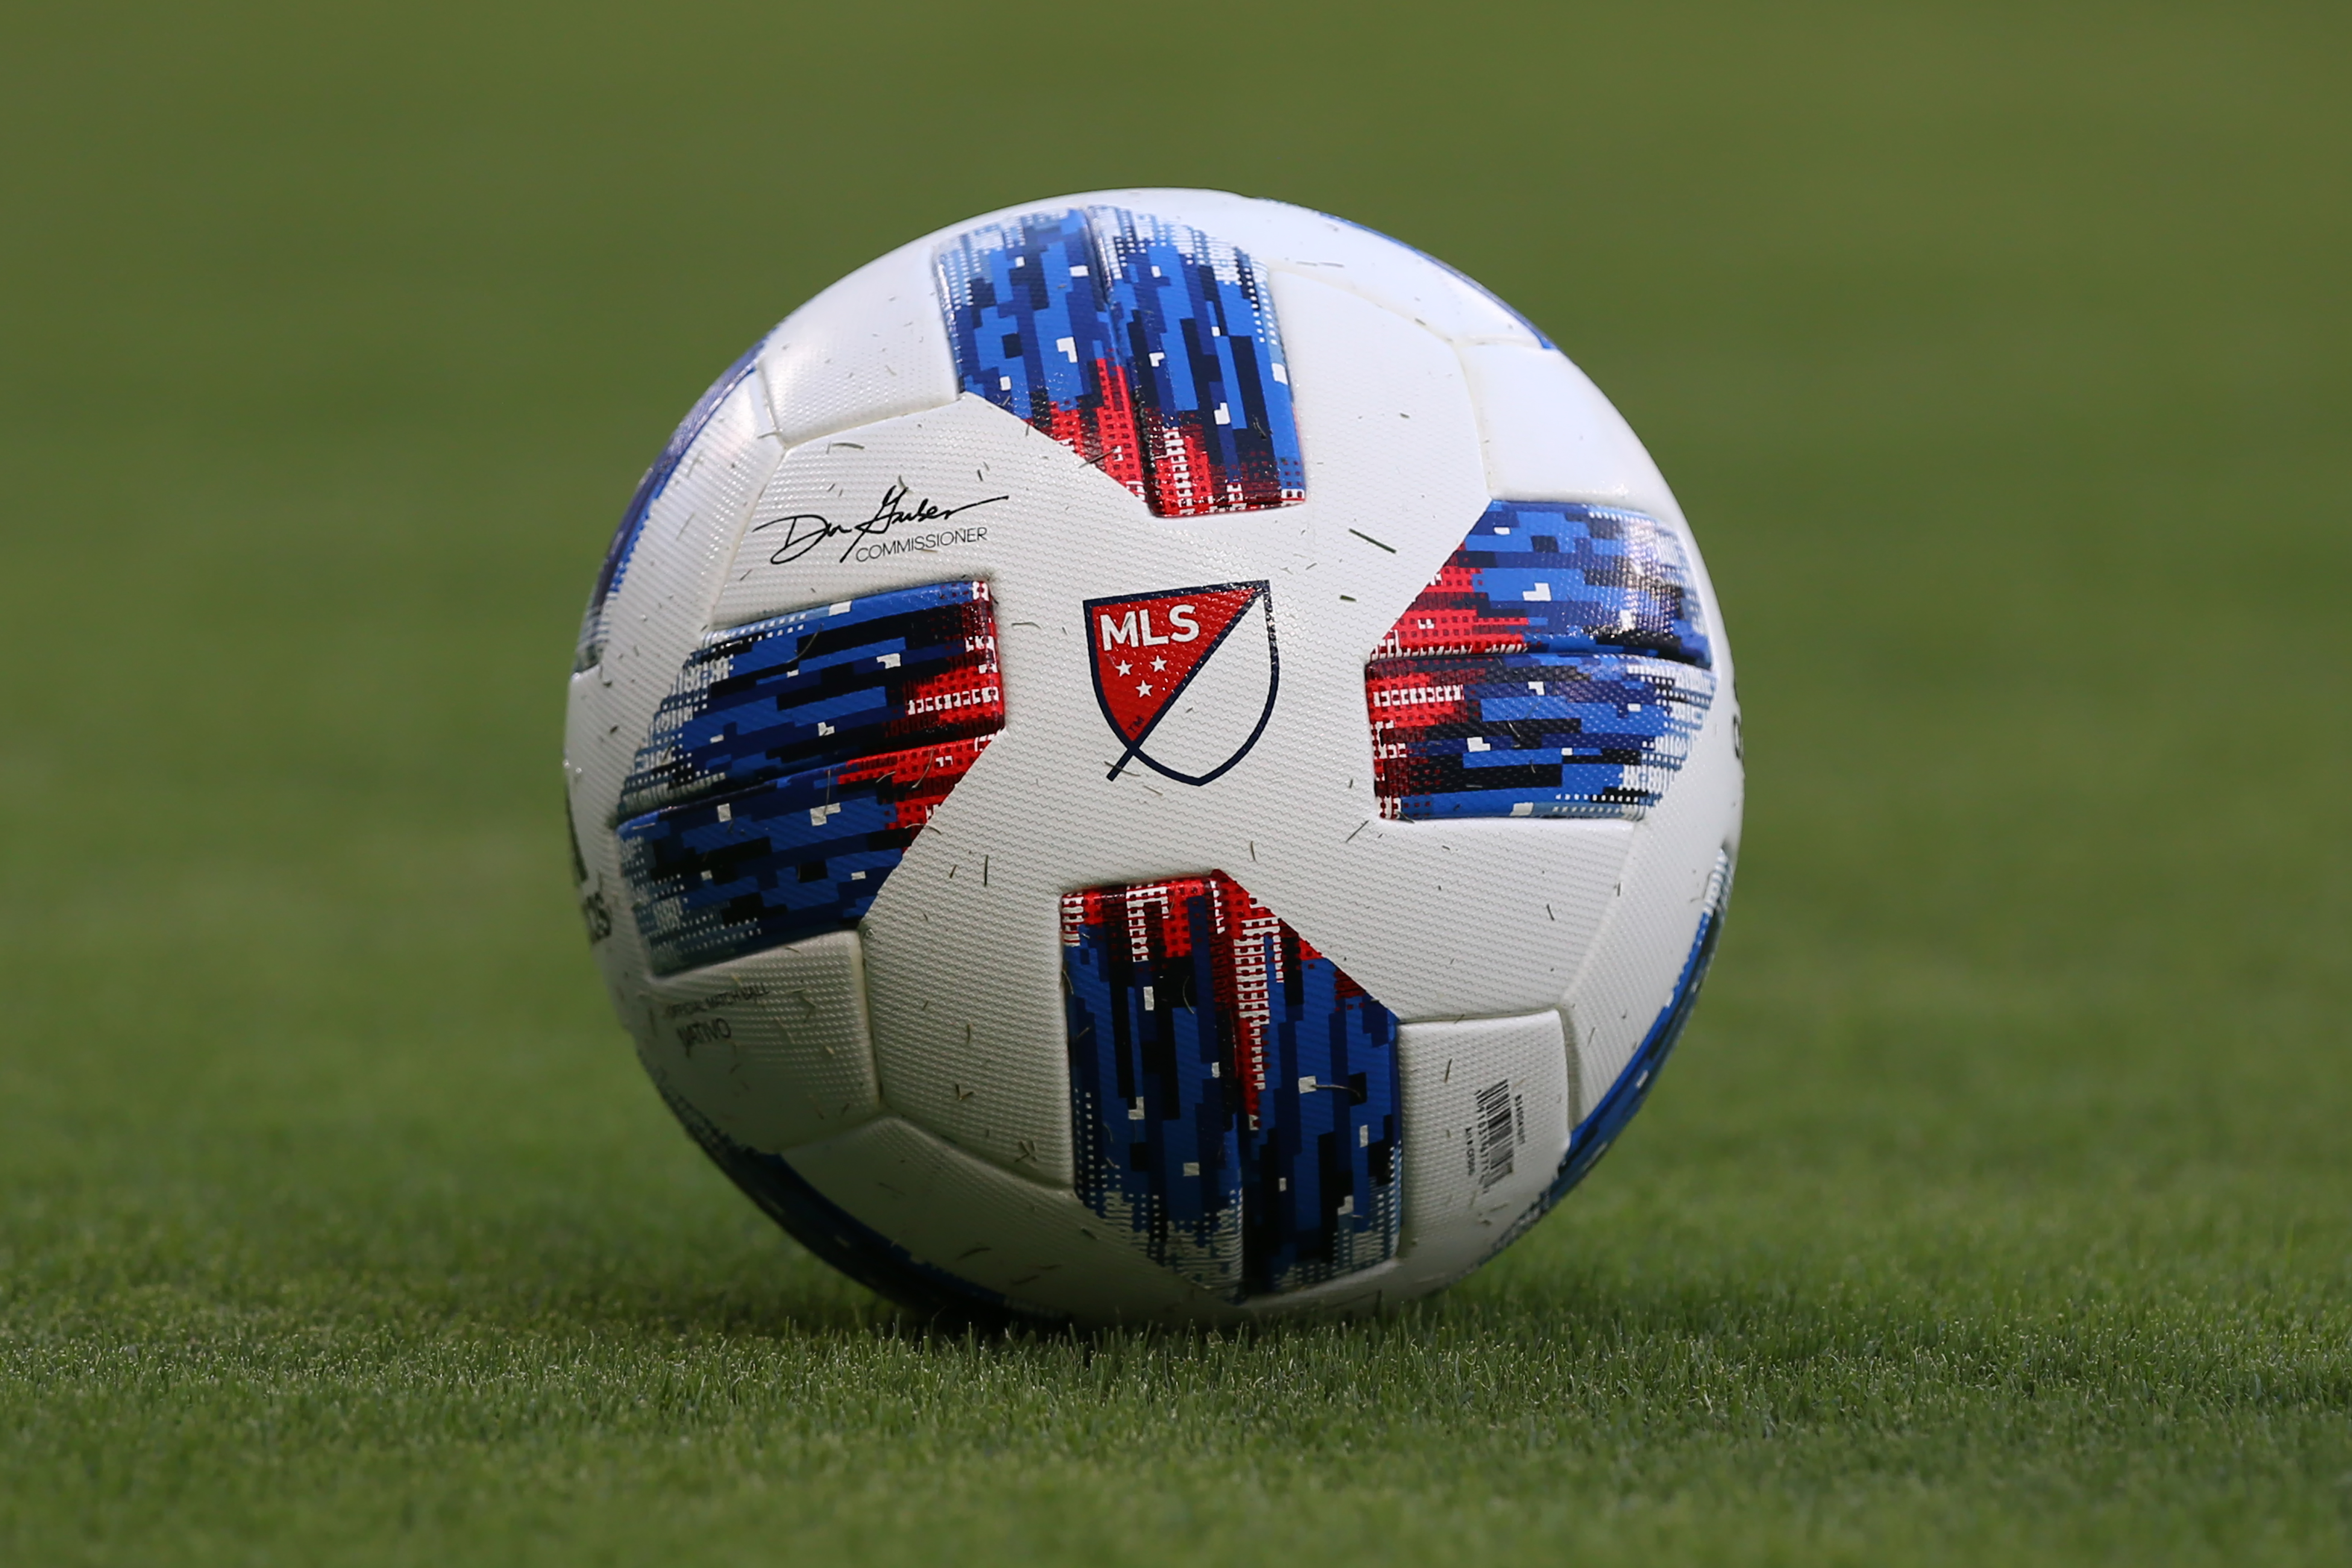 SOCCER: AUG 18 MLS - Portland Timbers at Sporting Kansas City